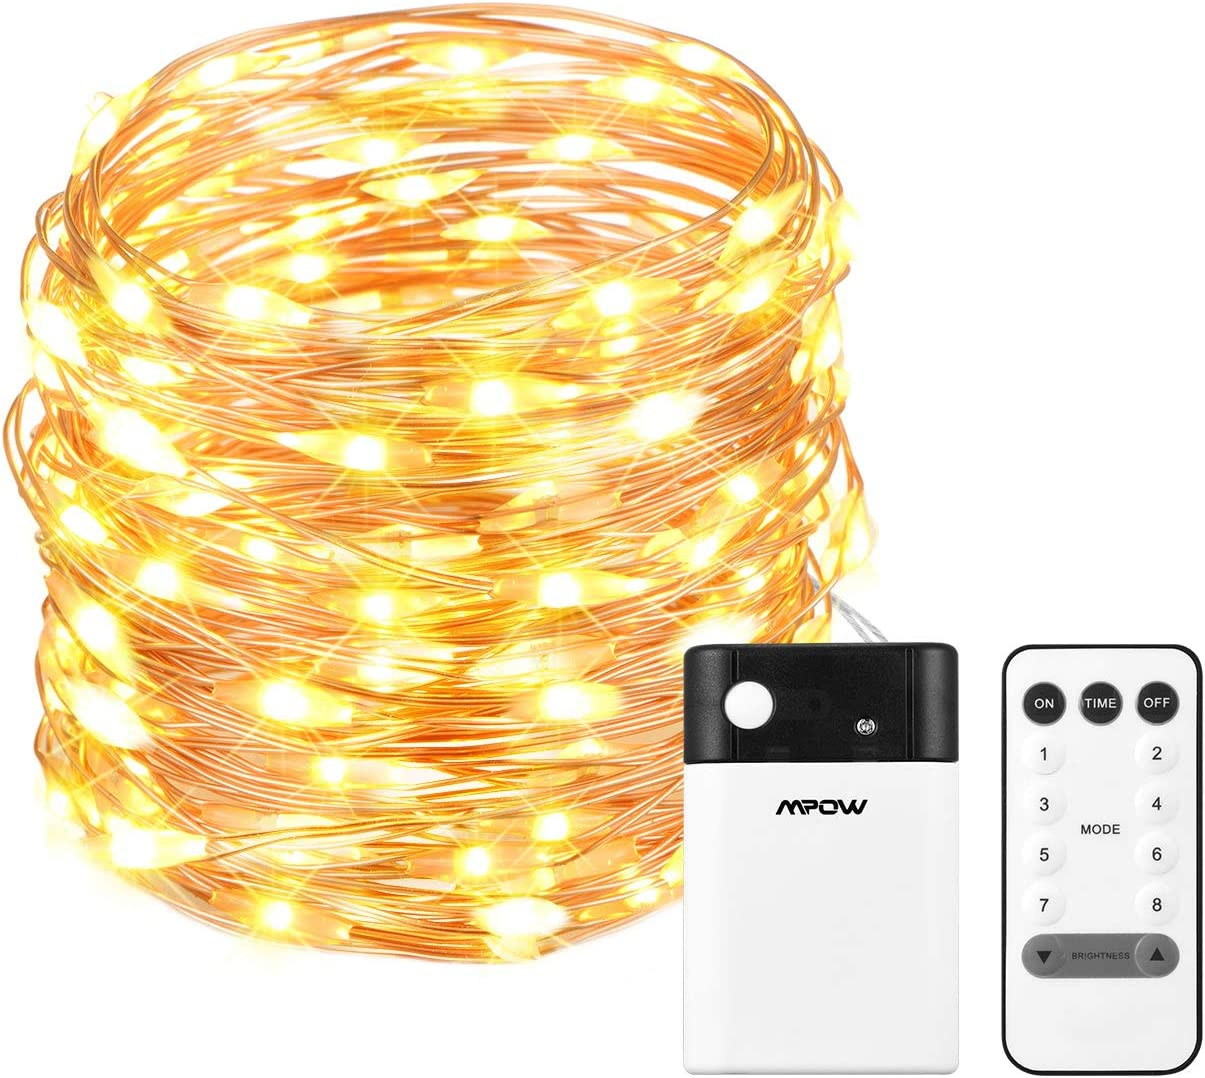 Mpow 33ft 100 LED Battery Operated String Lights, Fairy String Lights Remote Control, Decorative Lights Dimmable, Copper Wire Lights Bedroom, Patio, Garden, Parties 2 Colors Changable